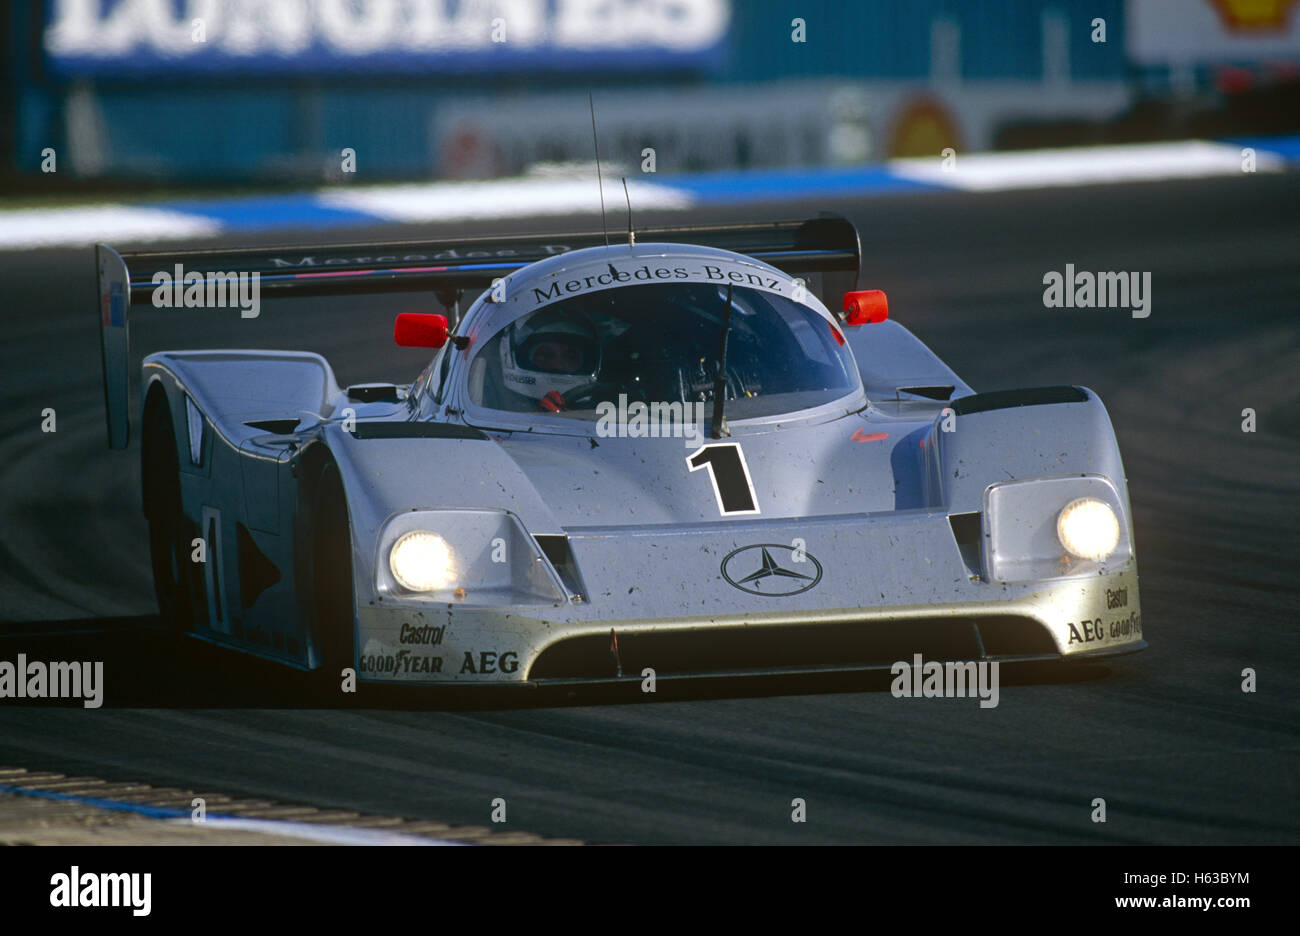 1 Baldi And Schlesser Mercedes Benz C11 In World Sports Car Championship    Stock Image